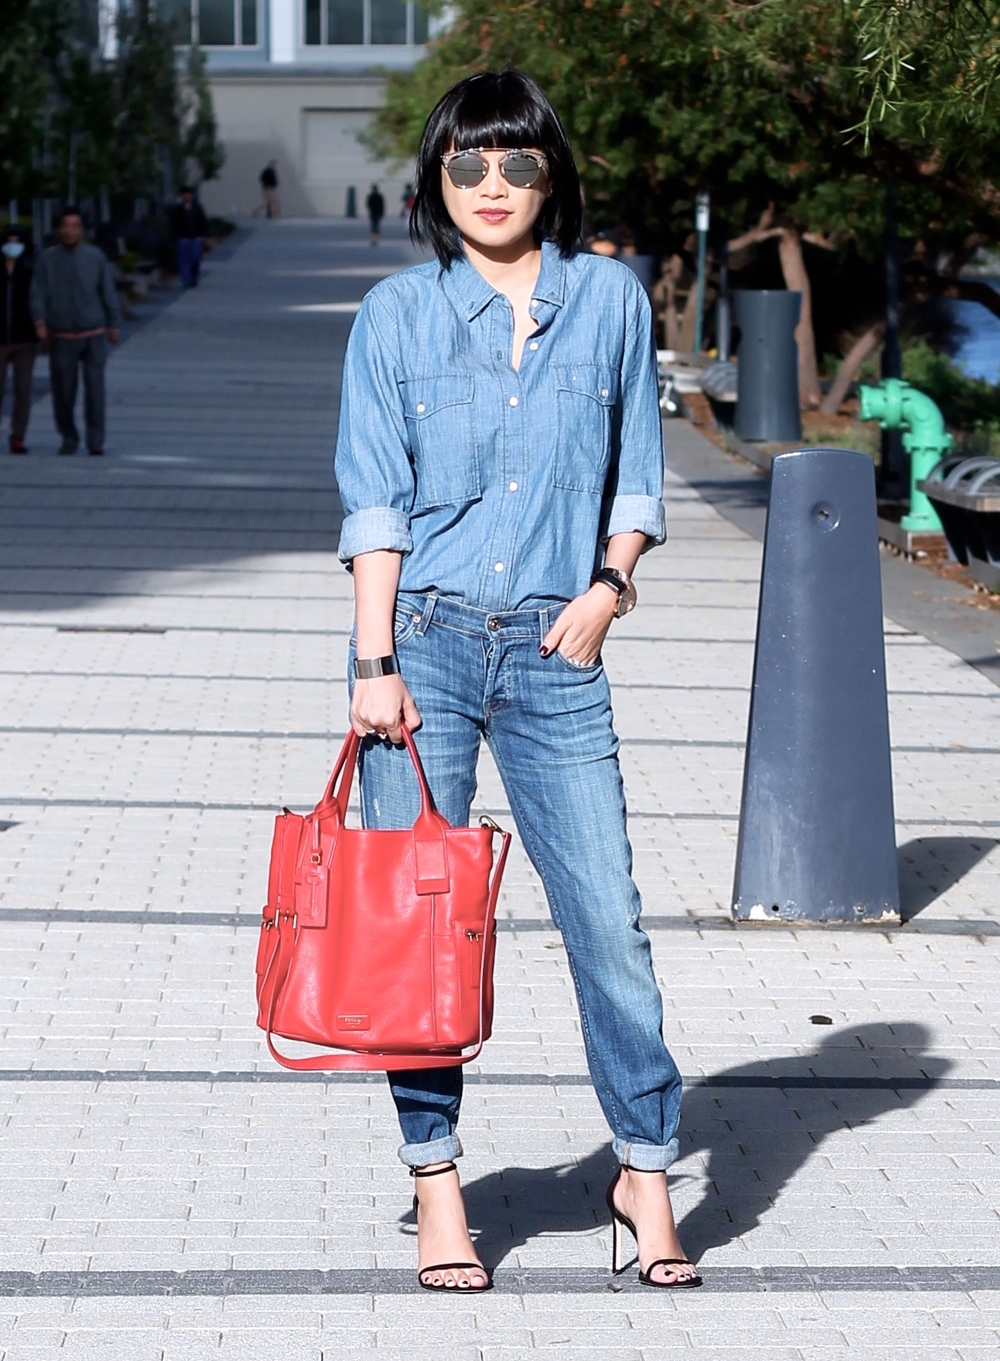 Fossil bag, Dior sunglasses, Aritzia chambray shirt, True Religion jeans.  Disclosure: this post was sponsored by Fossil through their partnership with POPSUGAR Select. While I was compensated to write a post about Fossil Product, all opinions are my own.